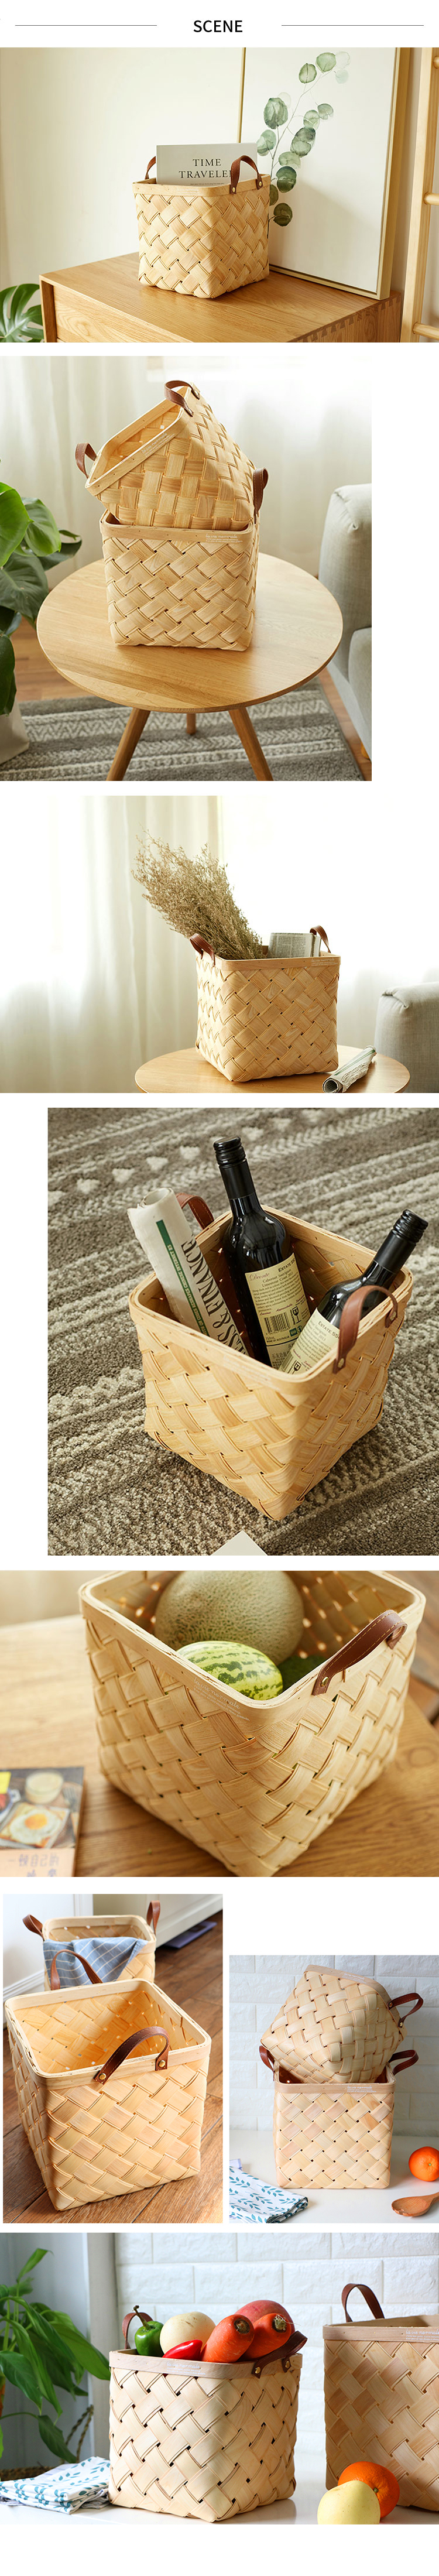 Square woodchip woven storage basket with leather handle for sundrises